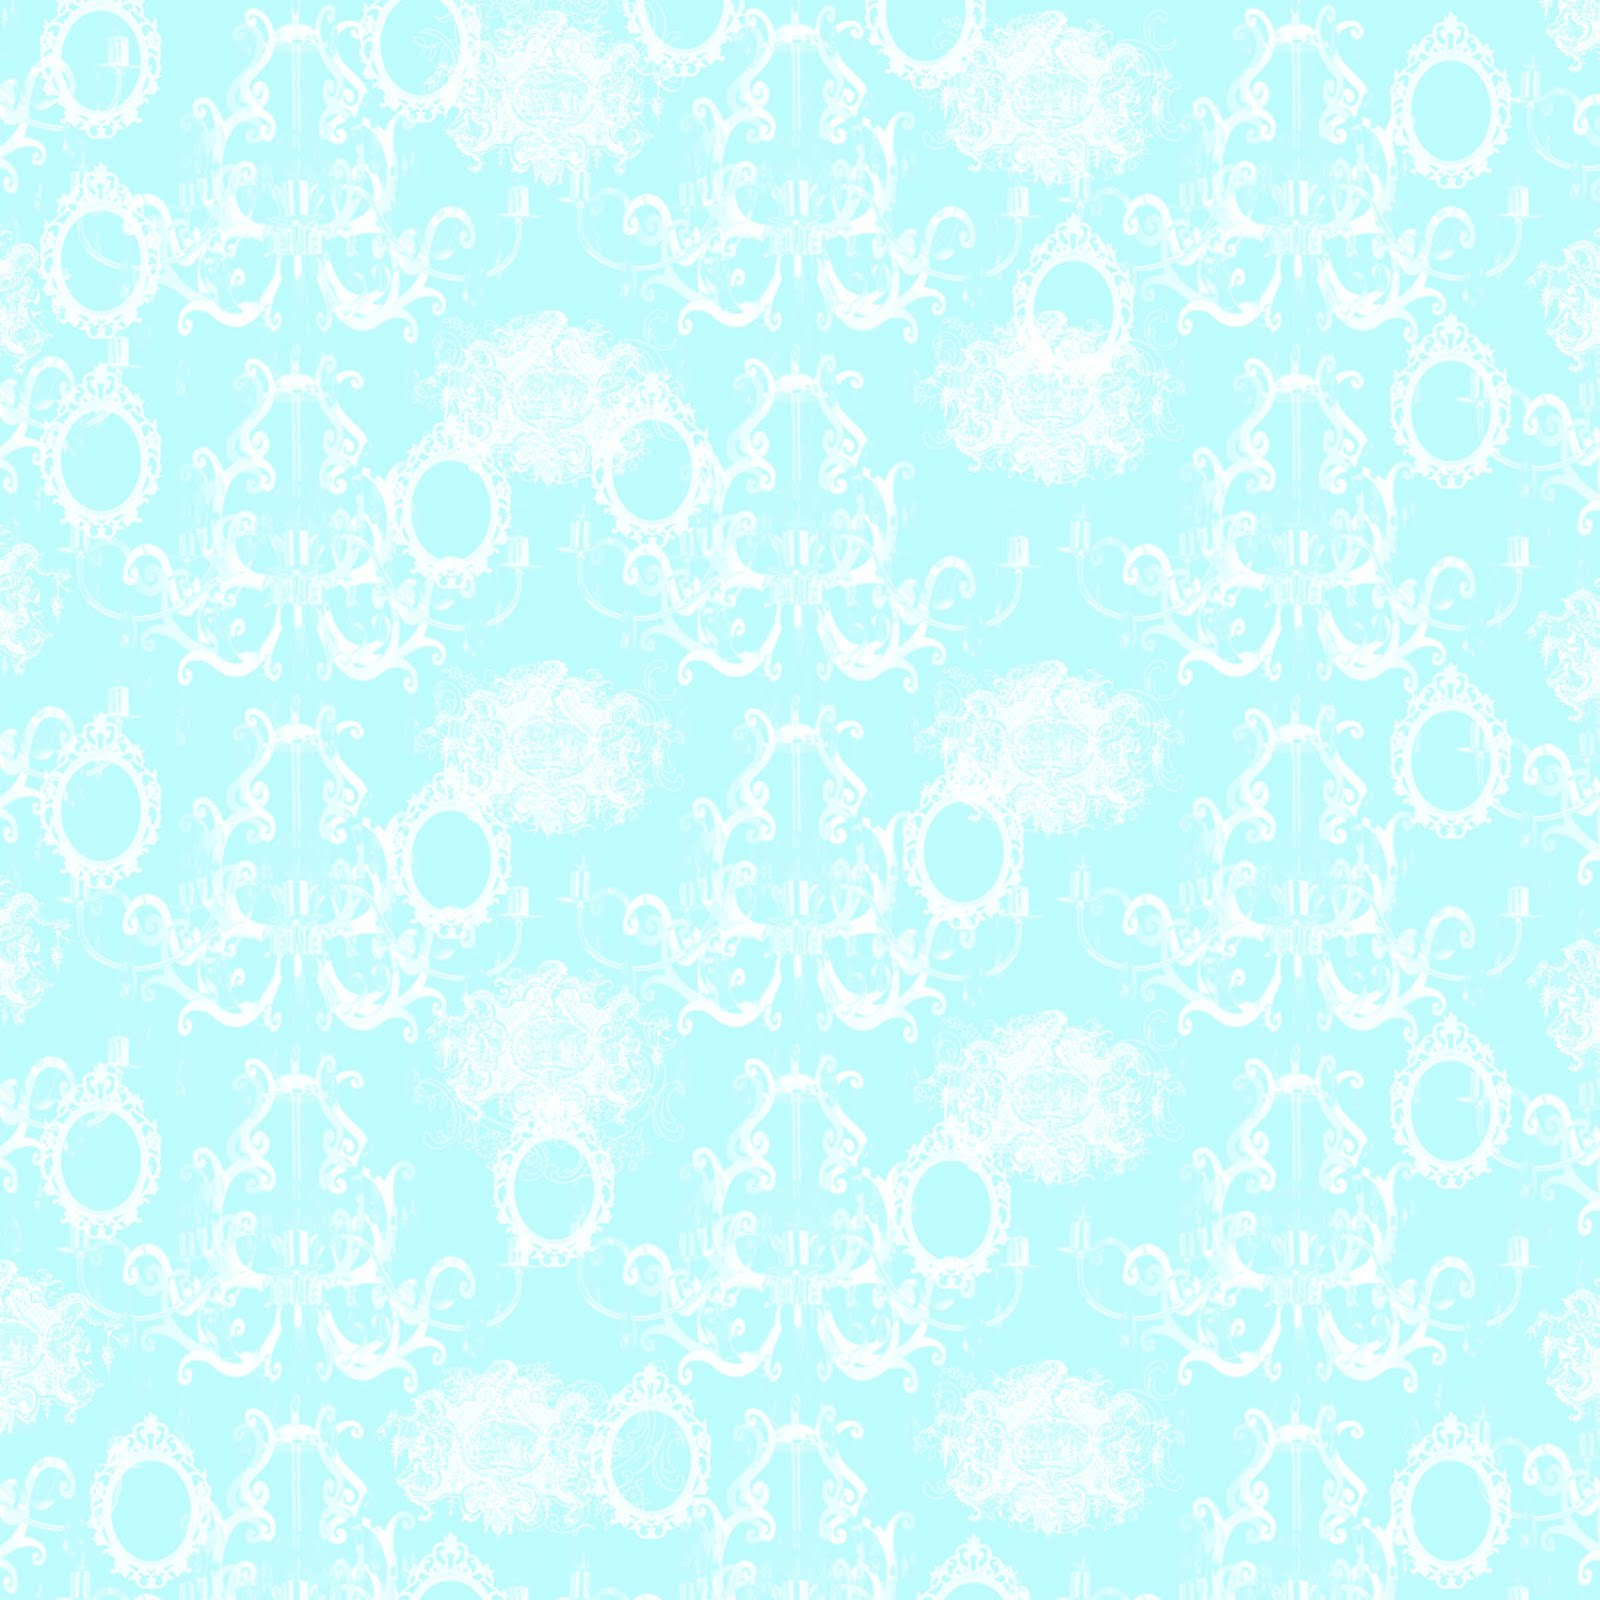 Stampin d 39 amour free digital scrapbook paper shabby - Scrapbook background free printables ...